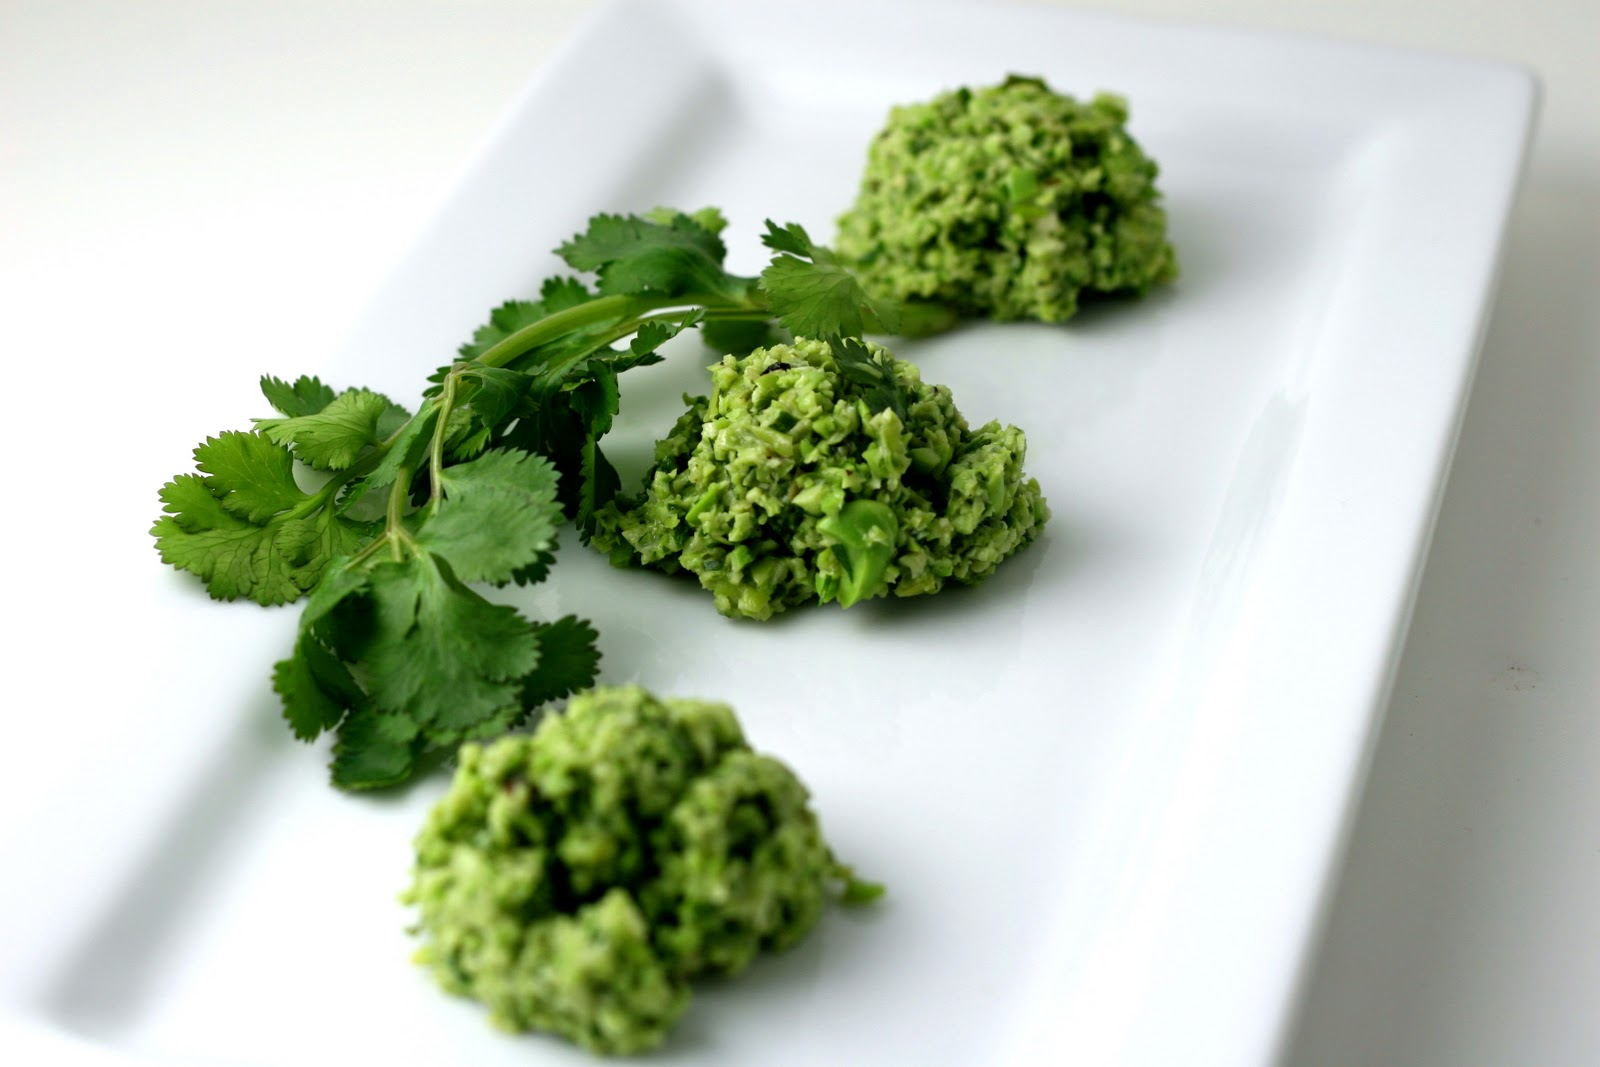 ... with Edamame-Cilantro Pesto - Florida Coastal Cooking & Wellness